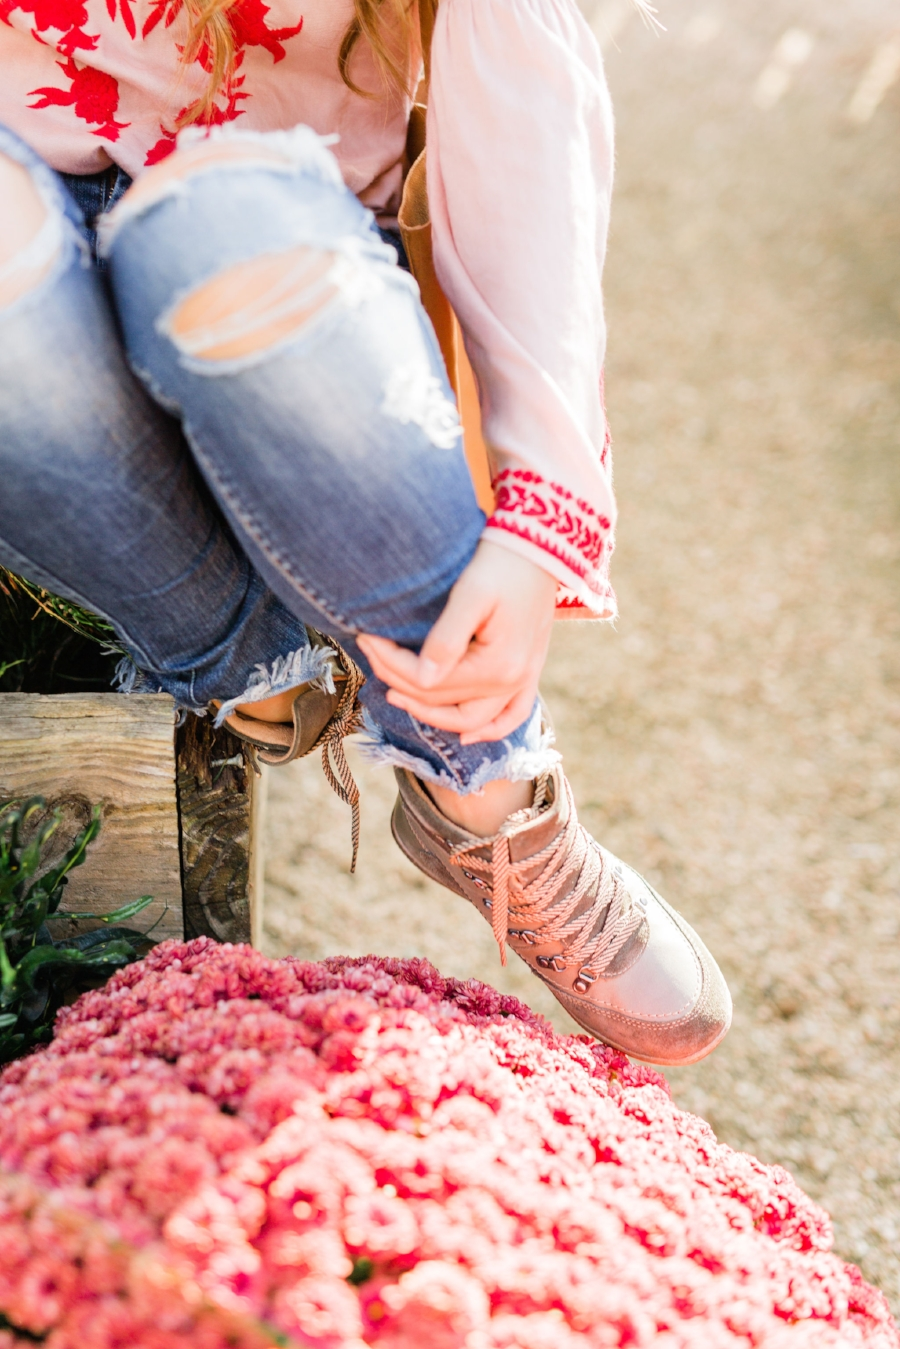 20 new ideas on how to style your favorite pair of hiking boots in spring summer fall or winter for women